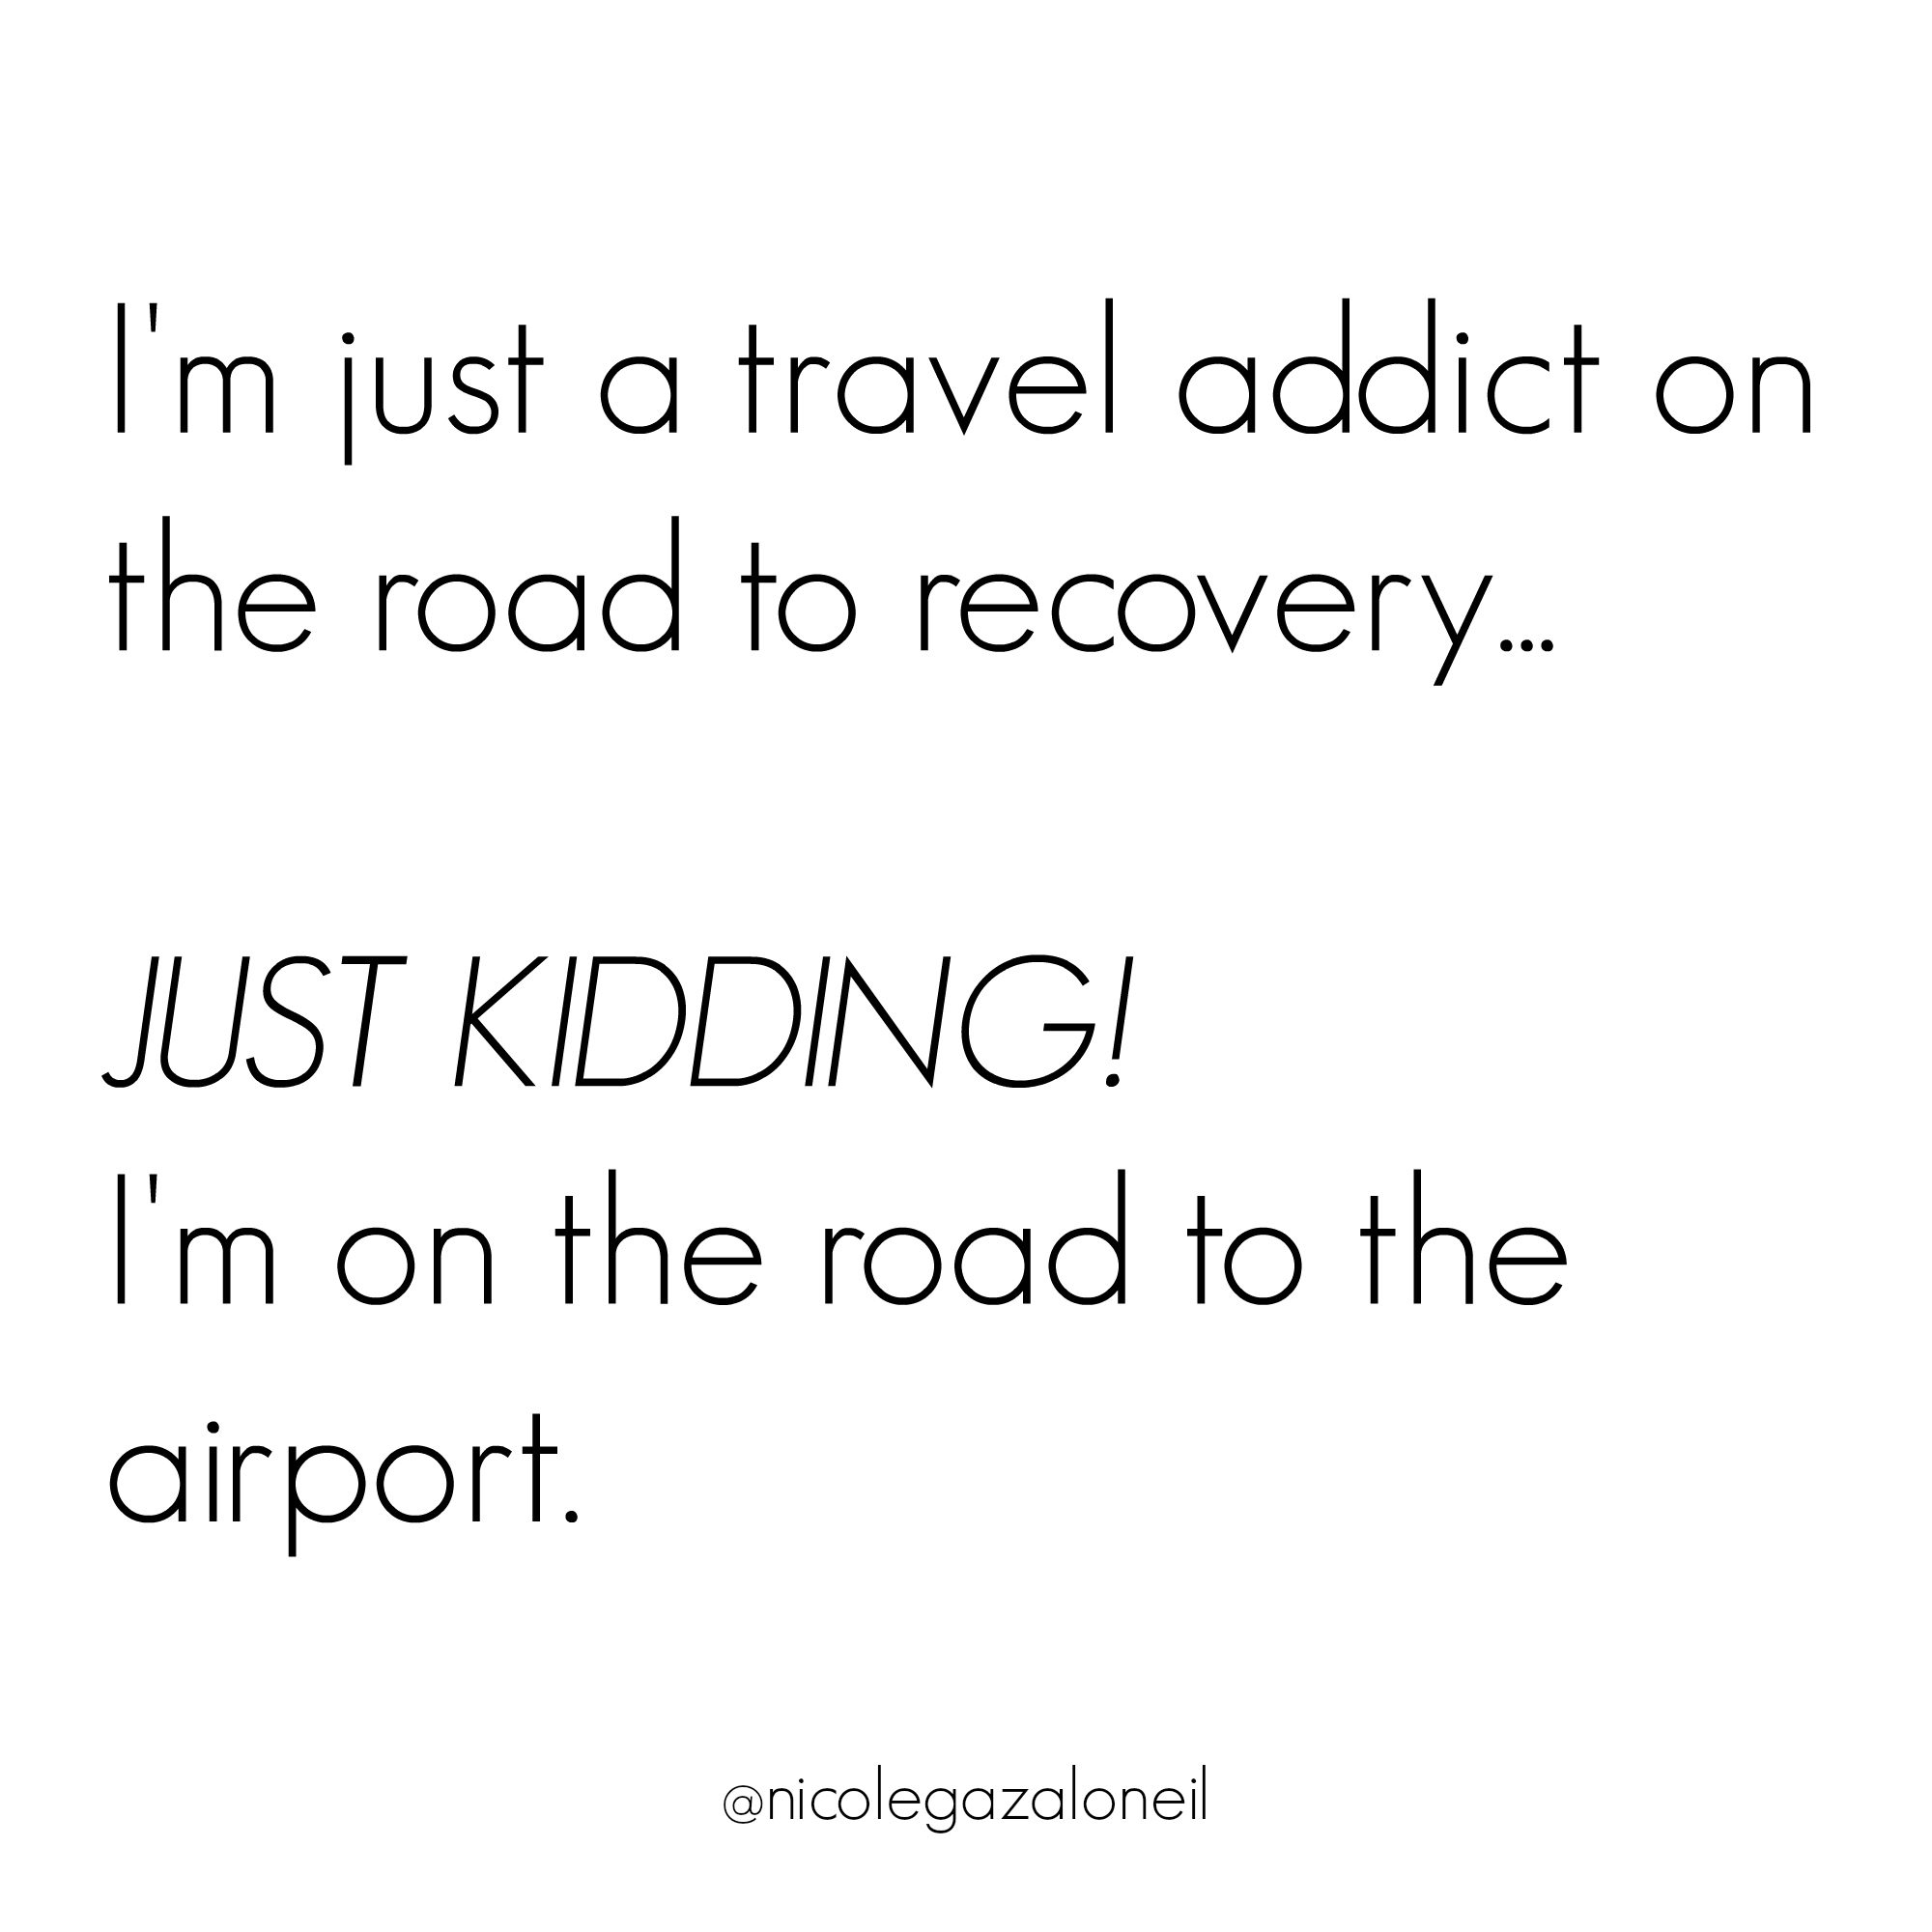 I'm just a travel addict on the road to recovery just kidding i'm on the road to the airport